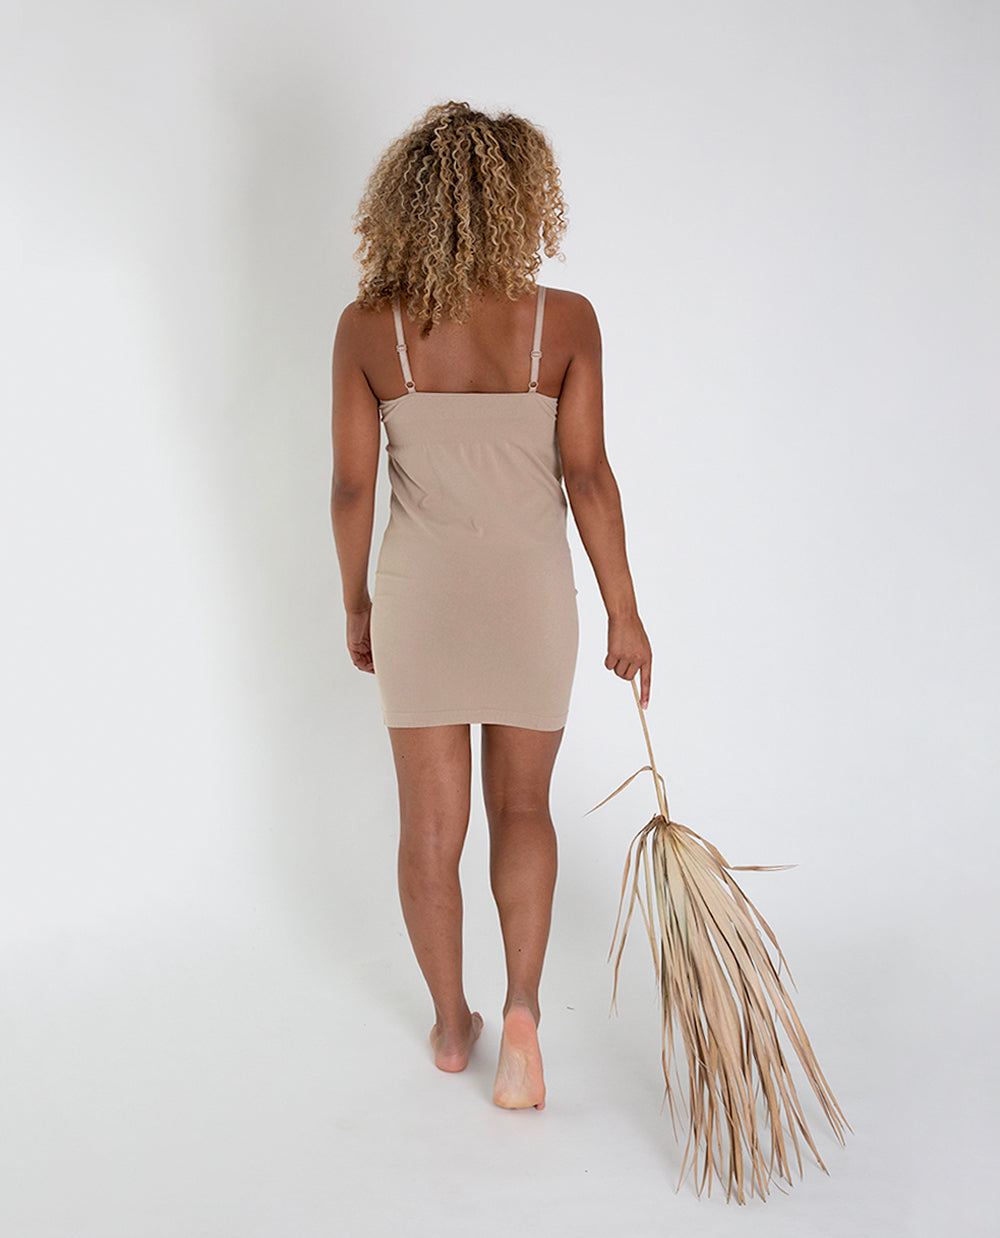 LANA Organic Cotton Slip In Nude